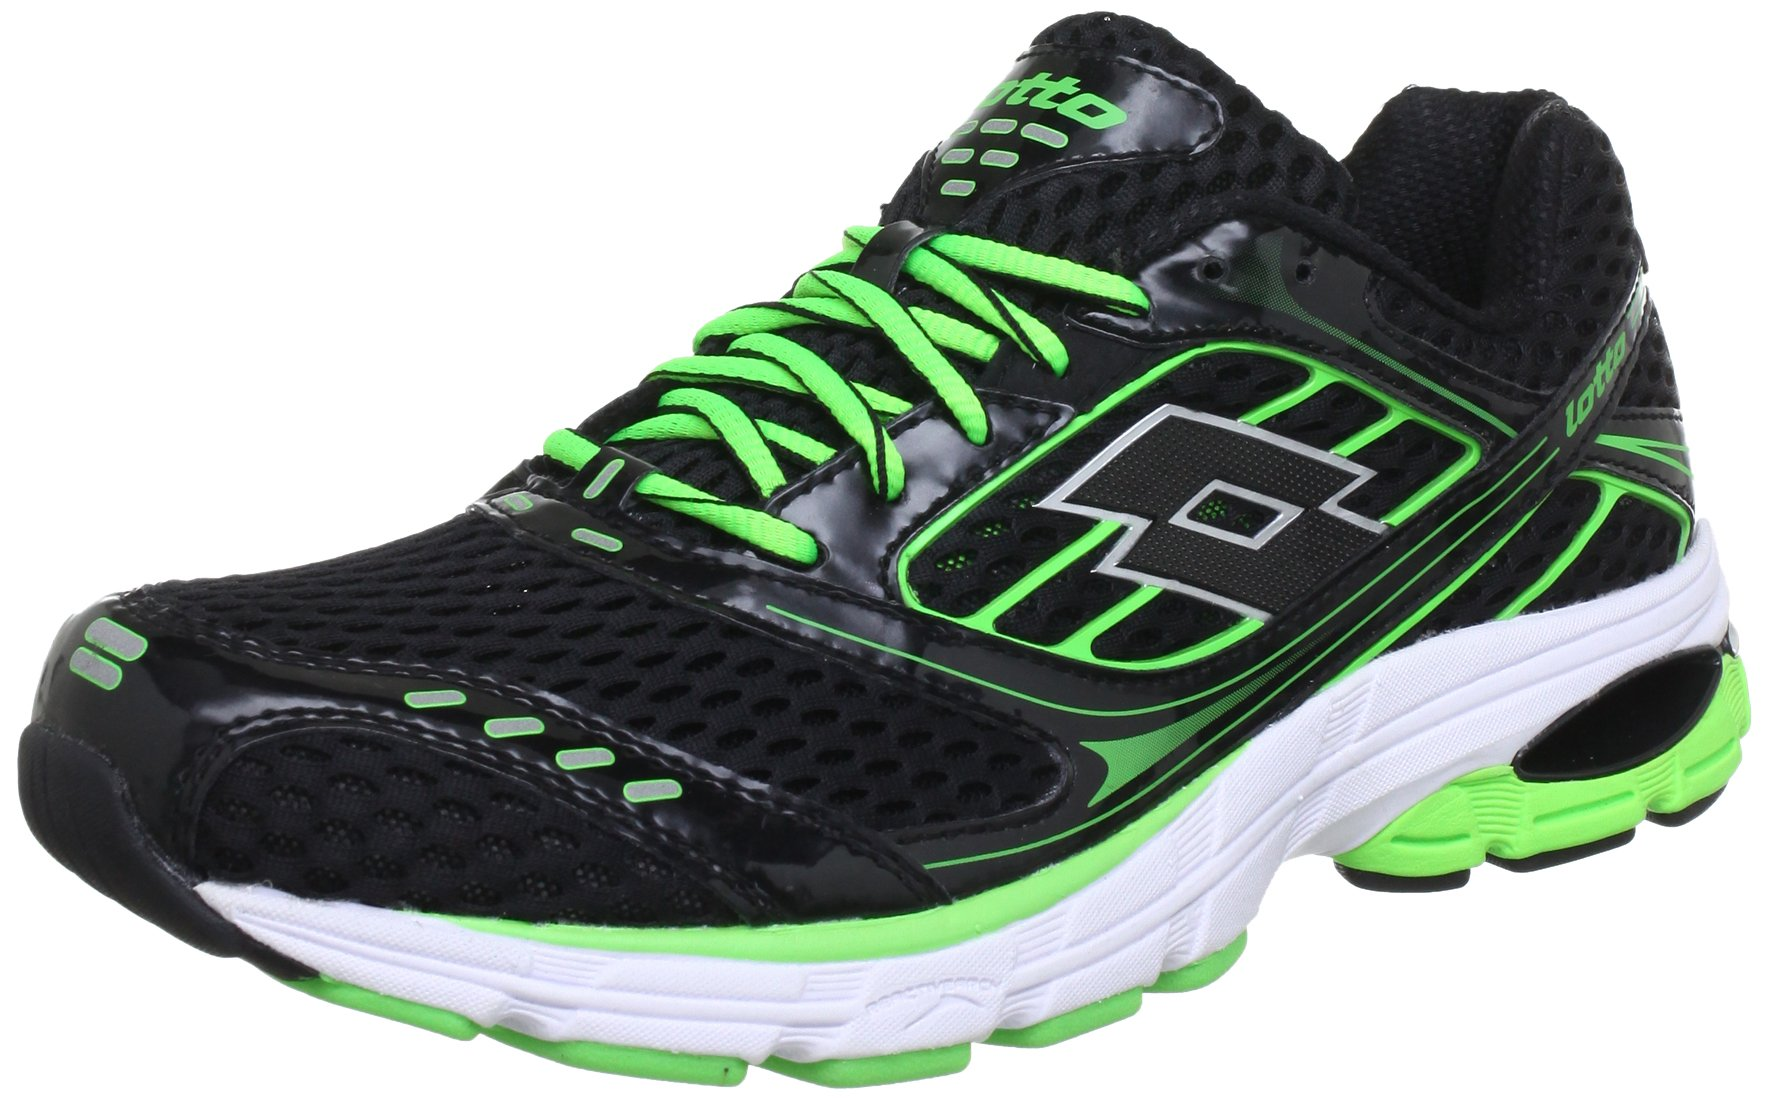 HommeNoirblk Q4052Baskets Mode n Eu Lotto Sport met green44 f76Ybgy